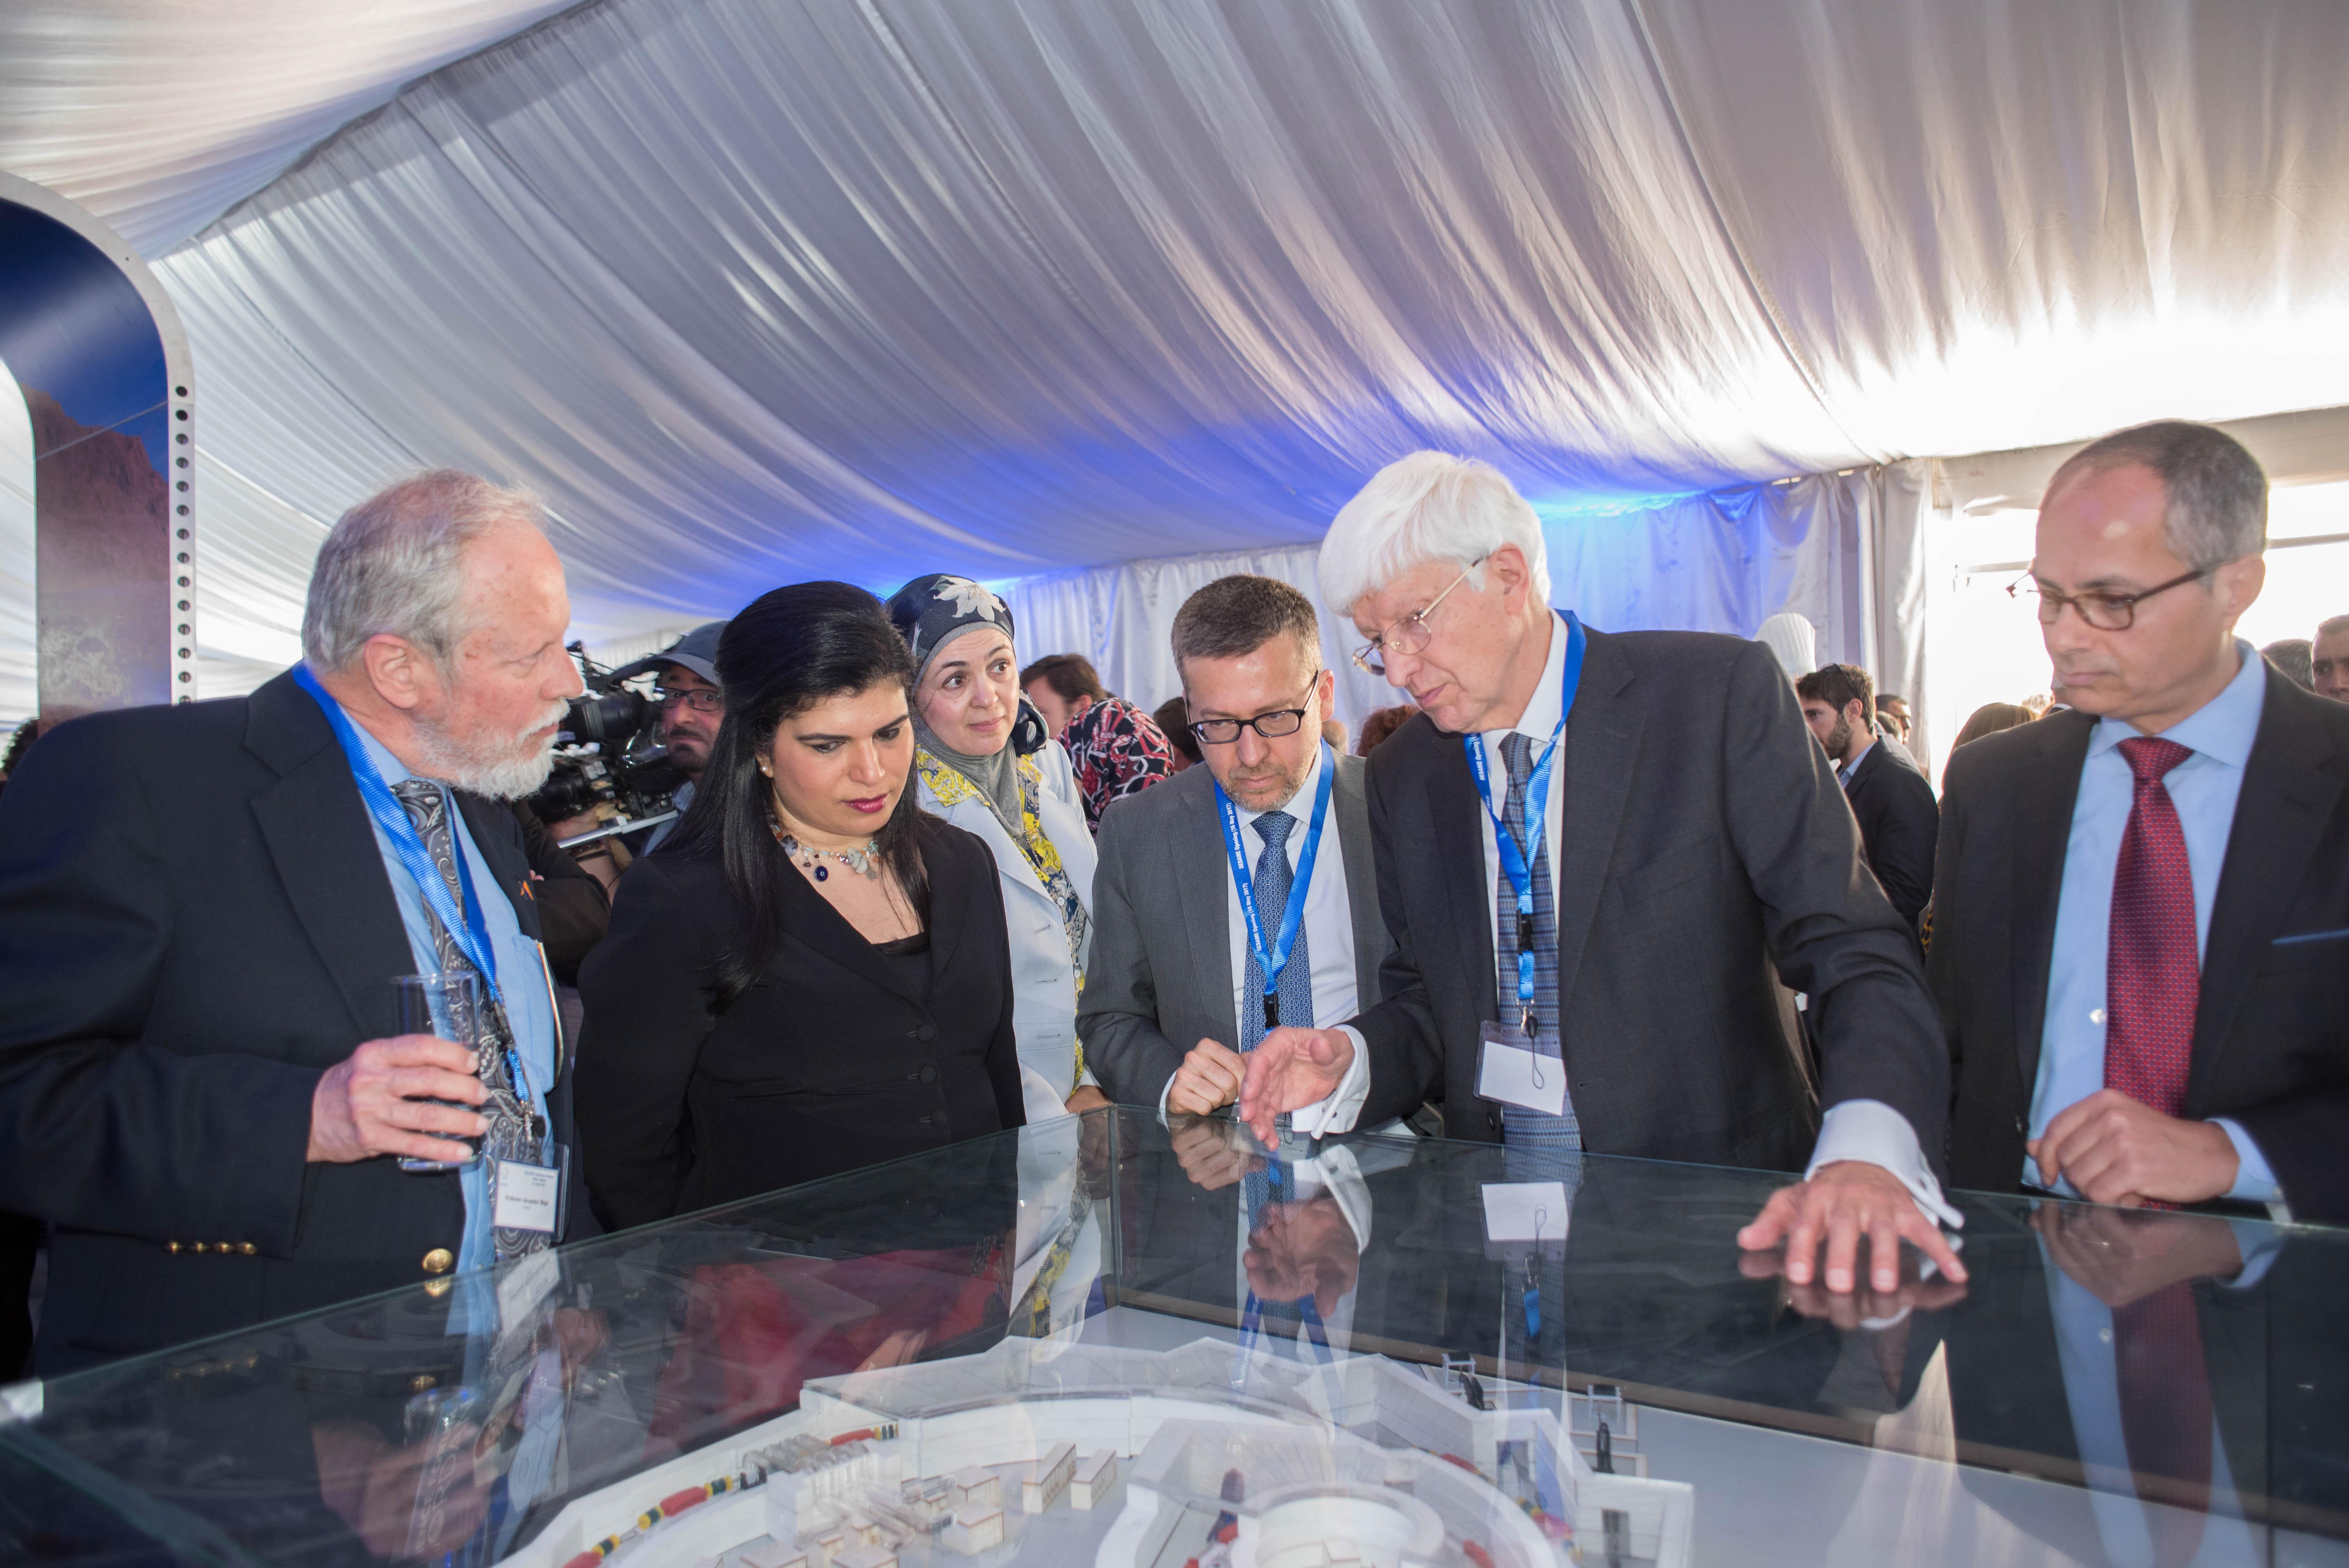 © Joe Niemela/ICTP-UNESCO: The President of the Council explaining the model of the SESAME accelerator with (on his right) the EC Commissioner for Research, Science and Innovation and HRH Princess Sumaya bint El Hassan (front)